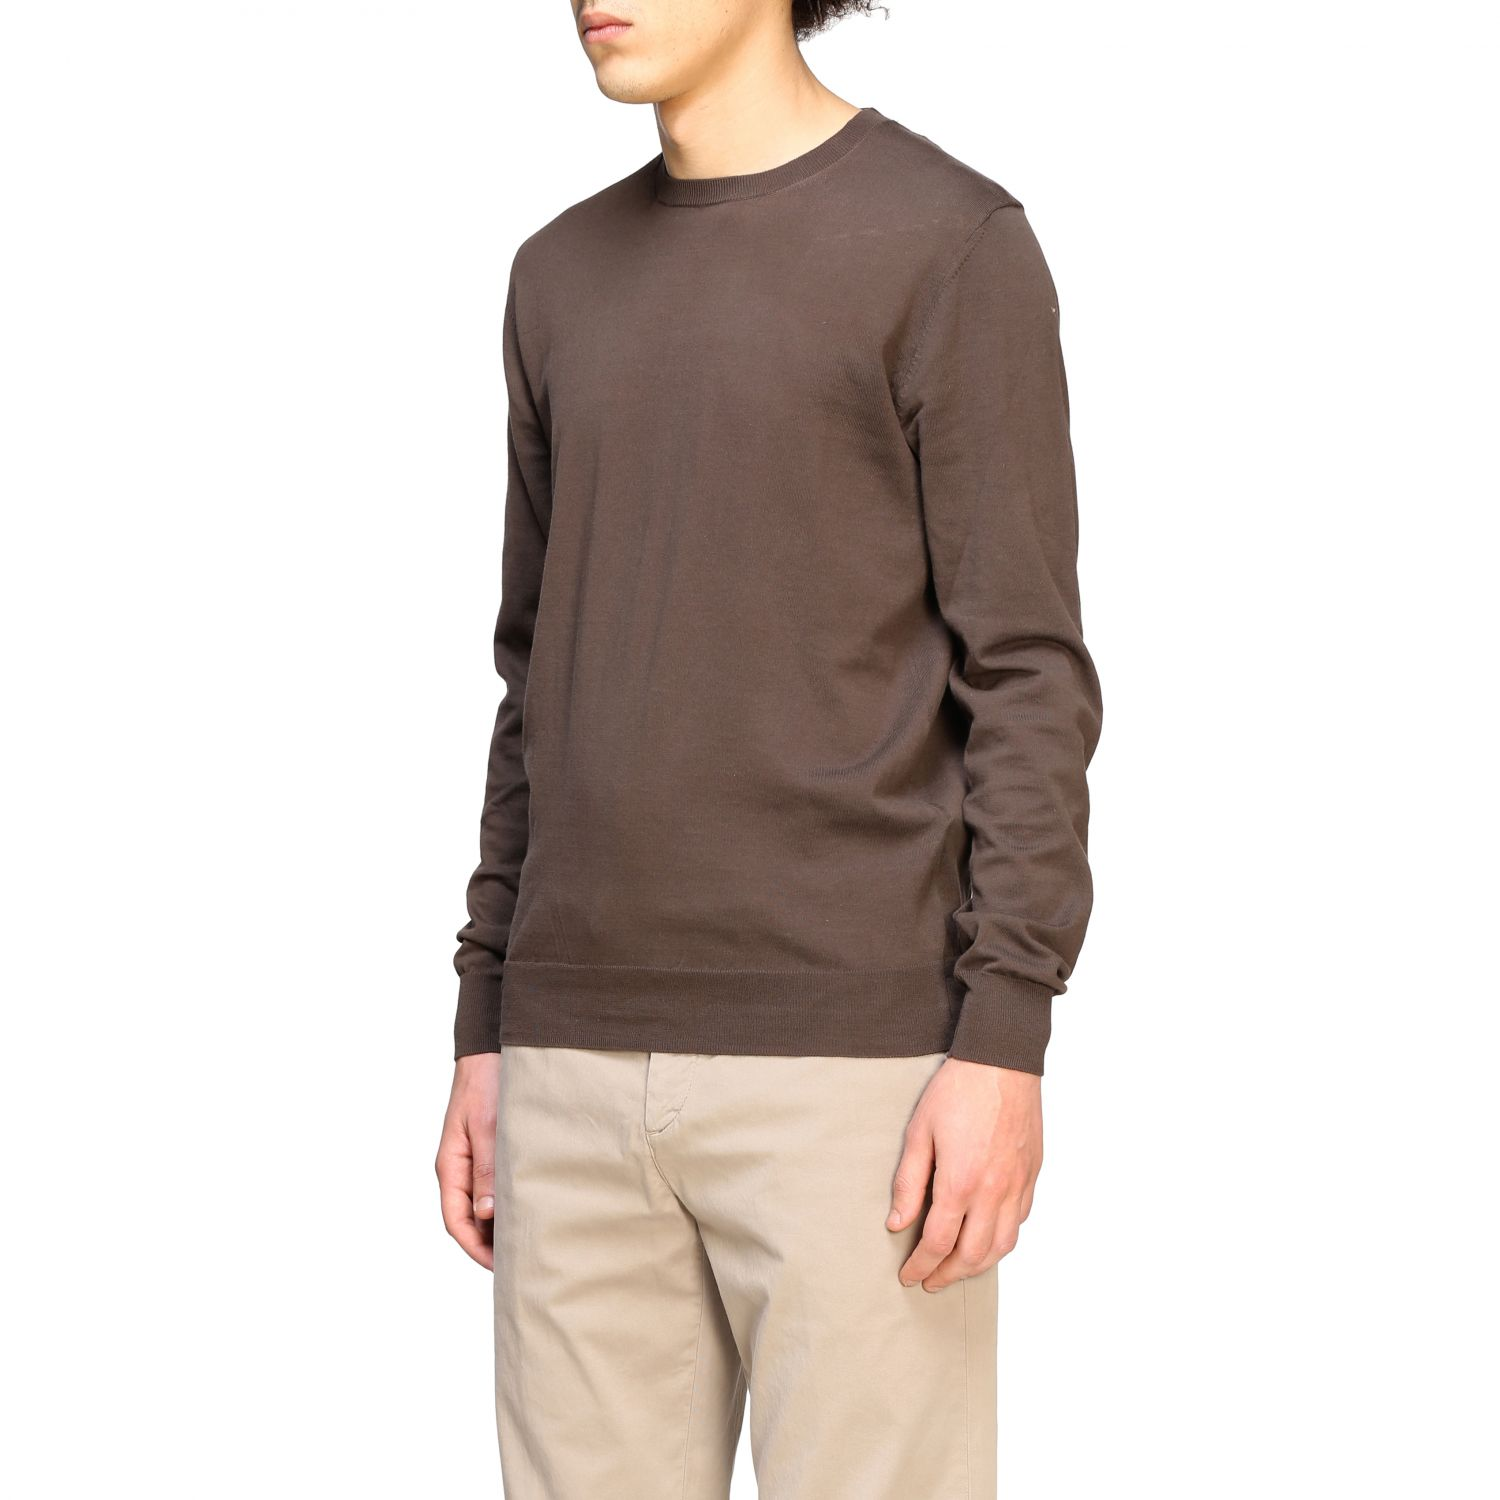 Pull homme Paolo Pecora brun 4